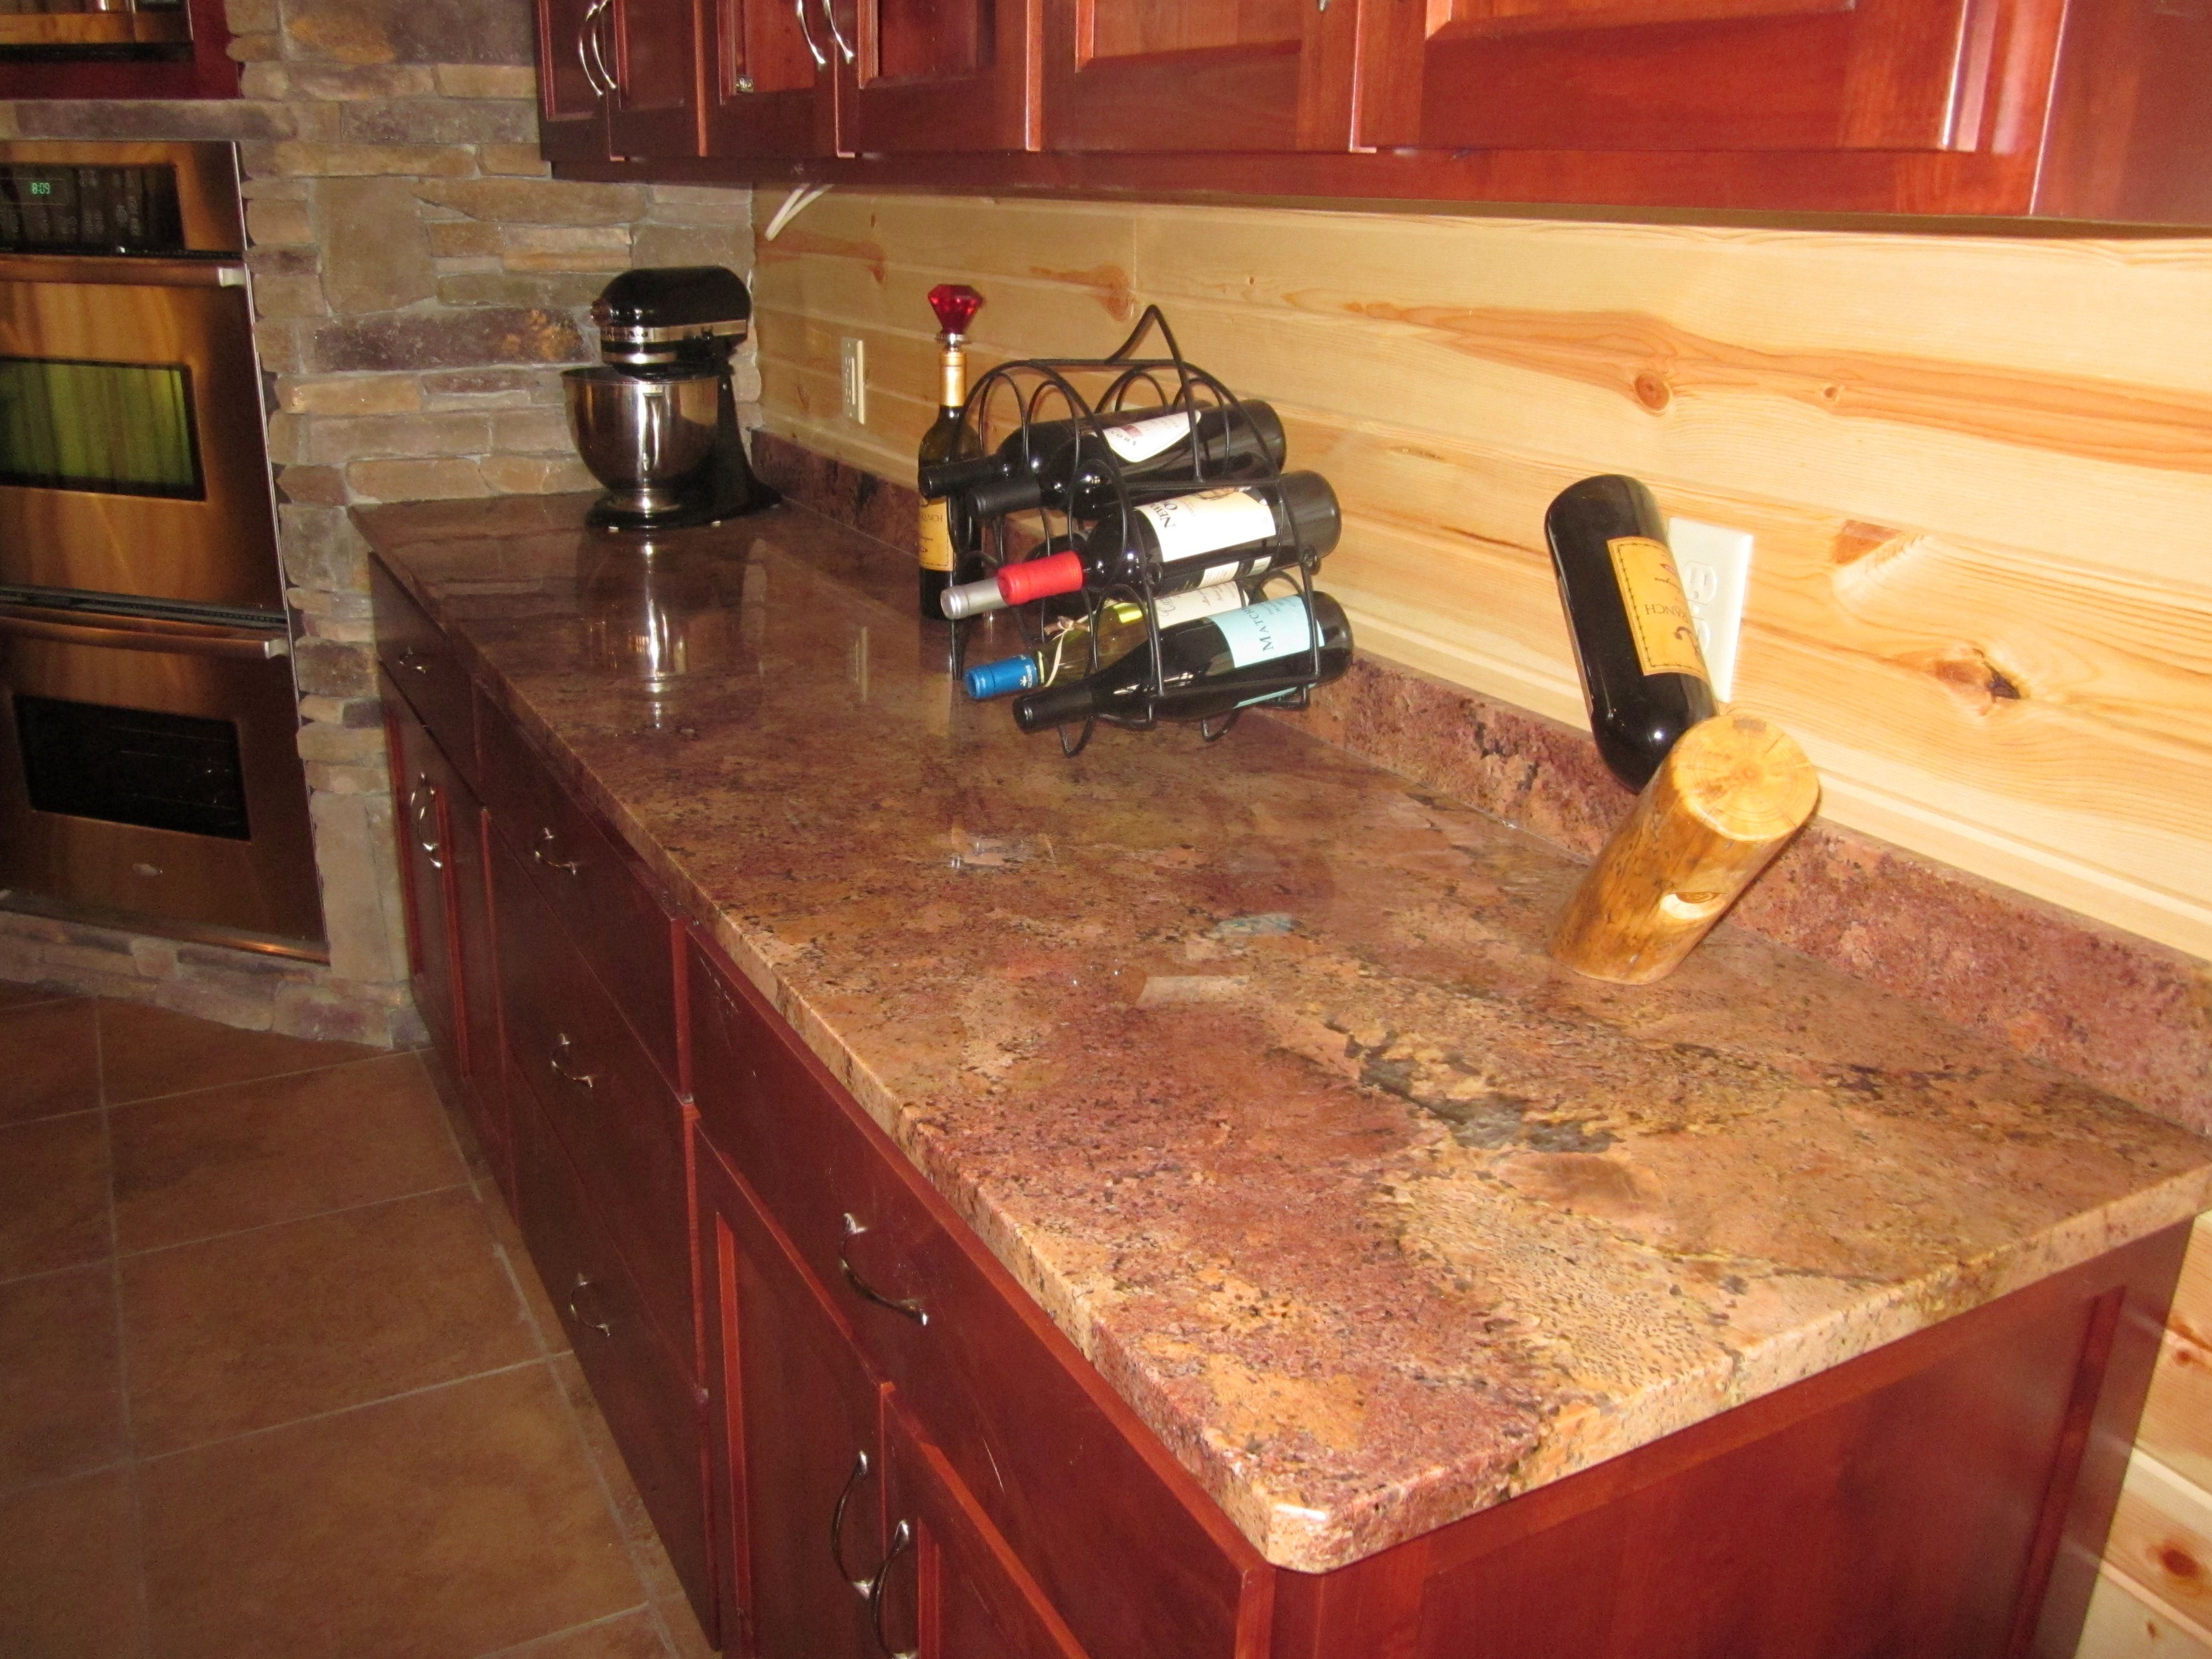 vibrant red granite kitchen countertops countertops for kitchens Beautiful Bordeaux red granite countertop